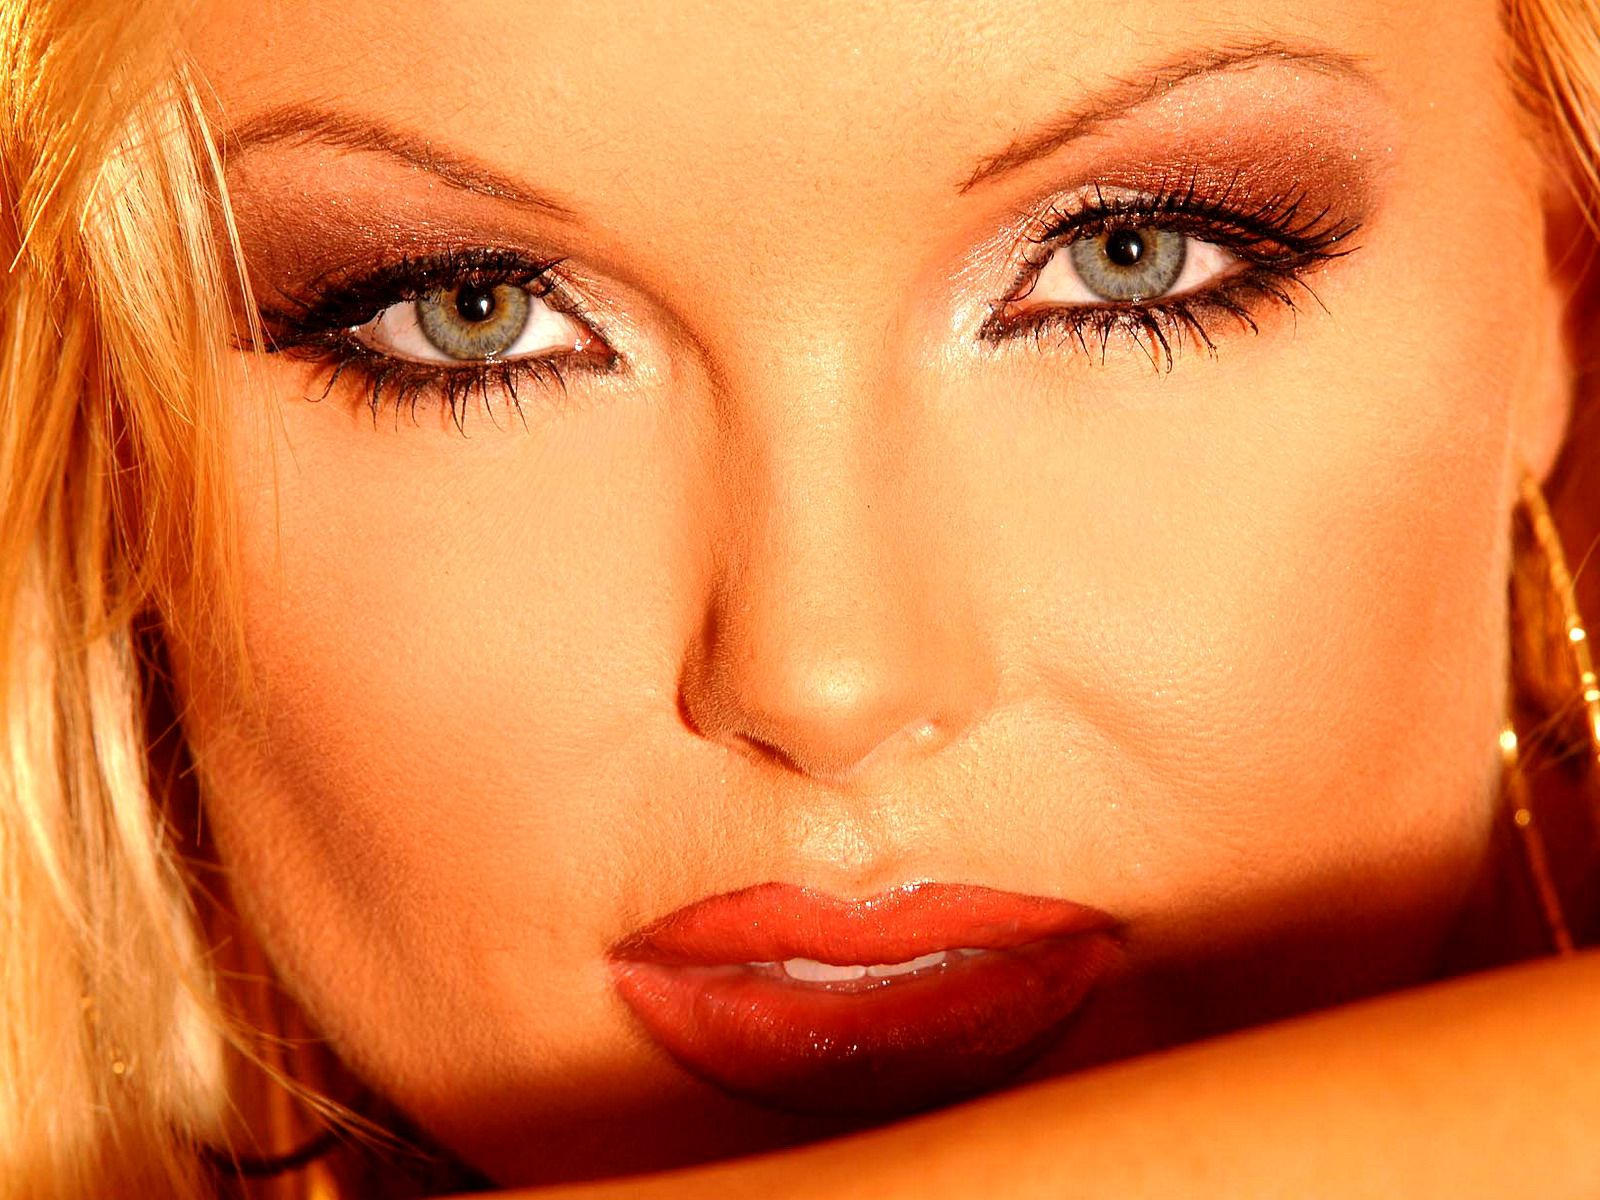 Silvia Saint from the Czech Republic | GREGORY CHANDLER